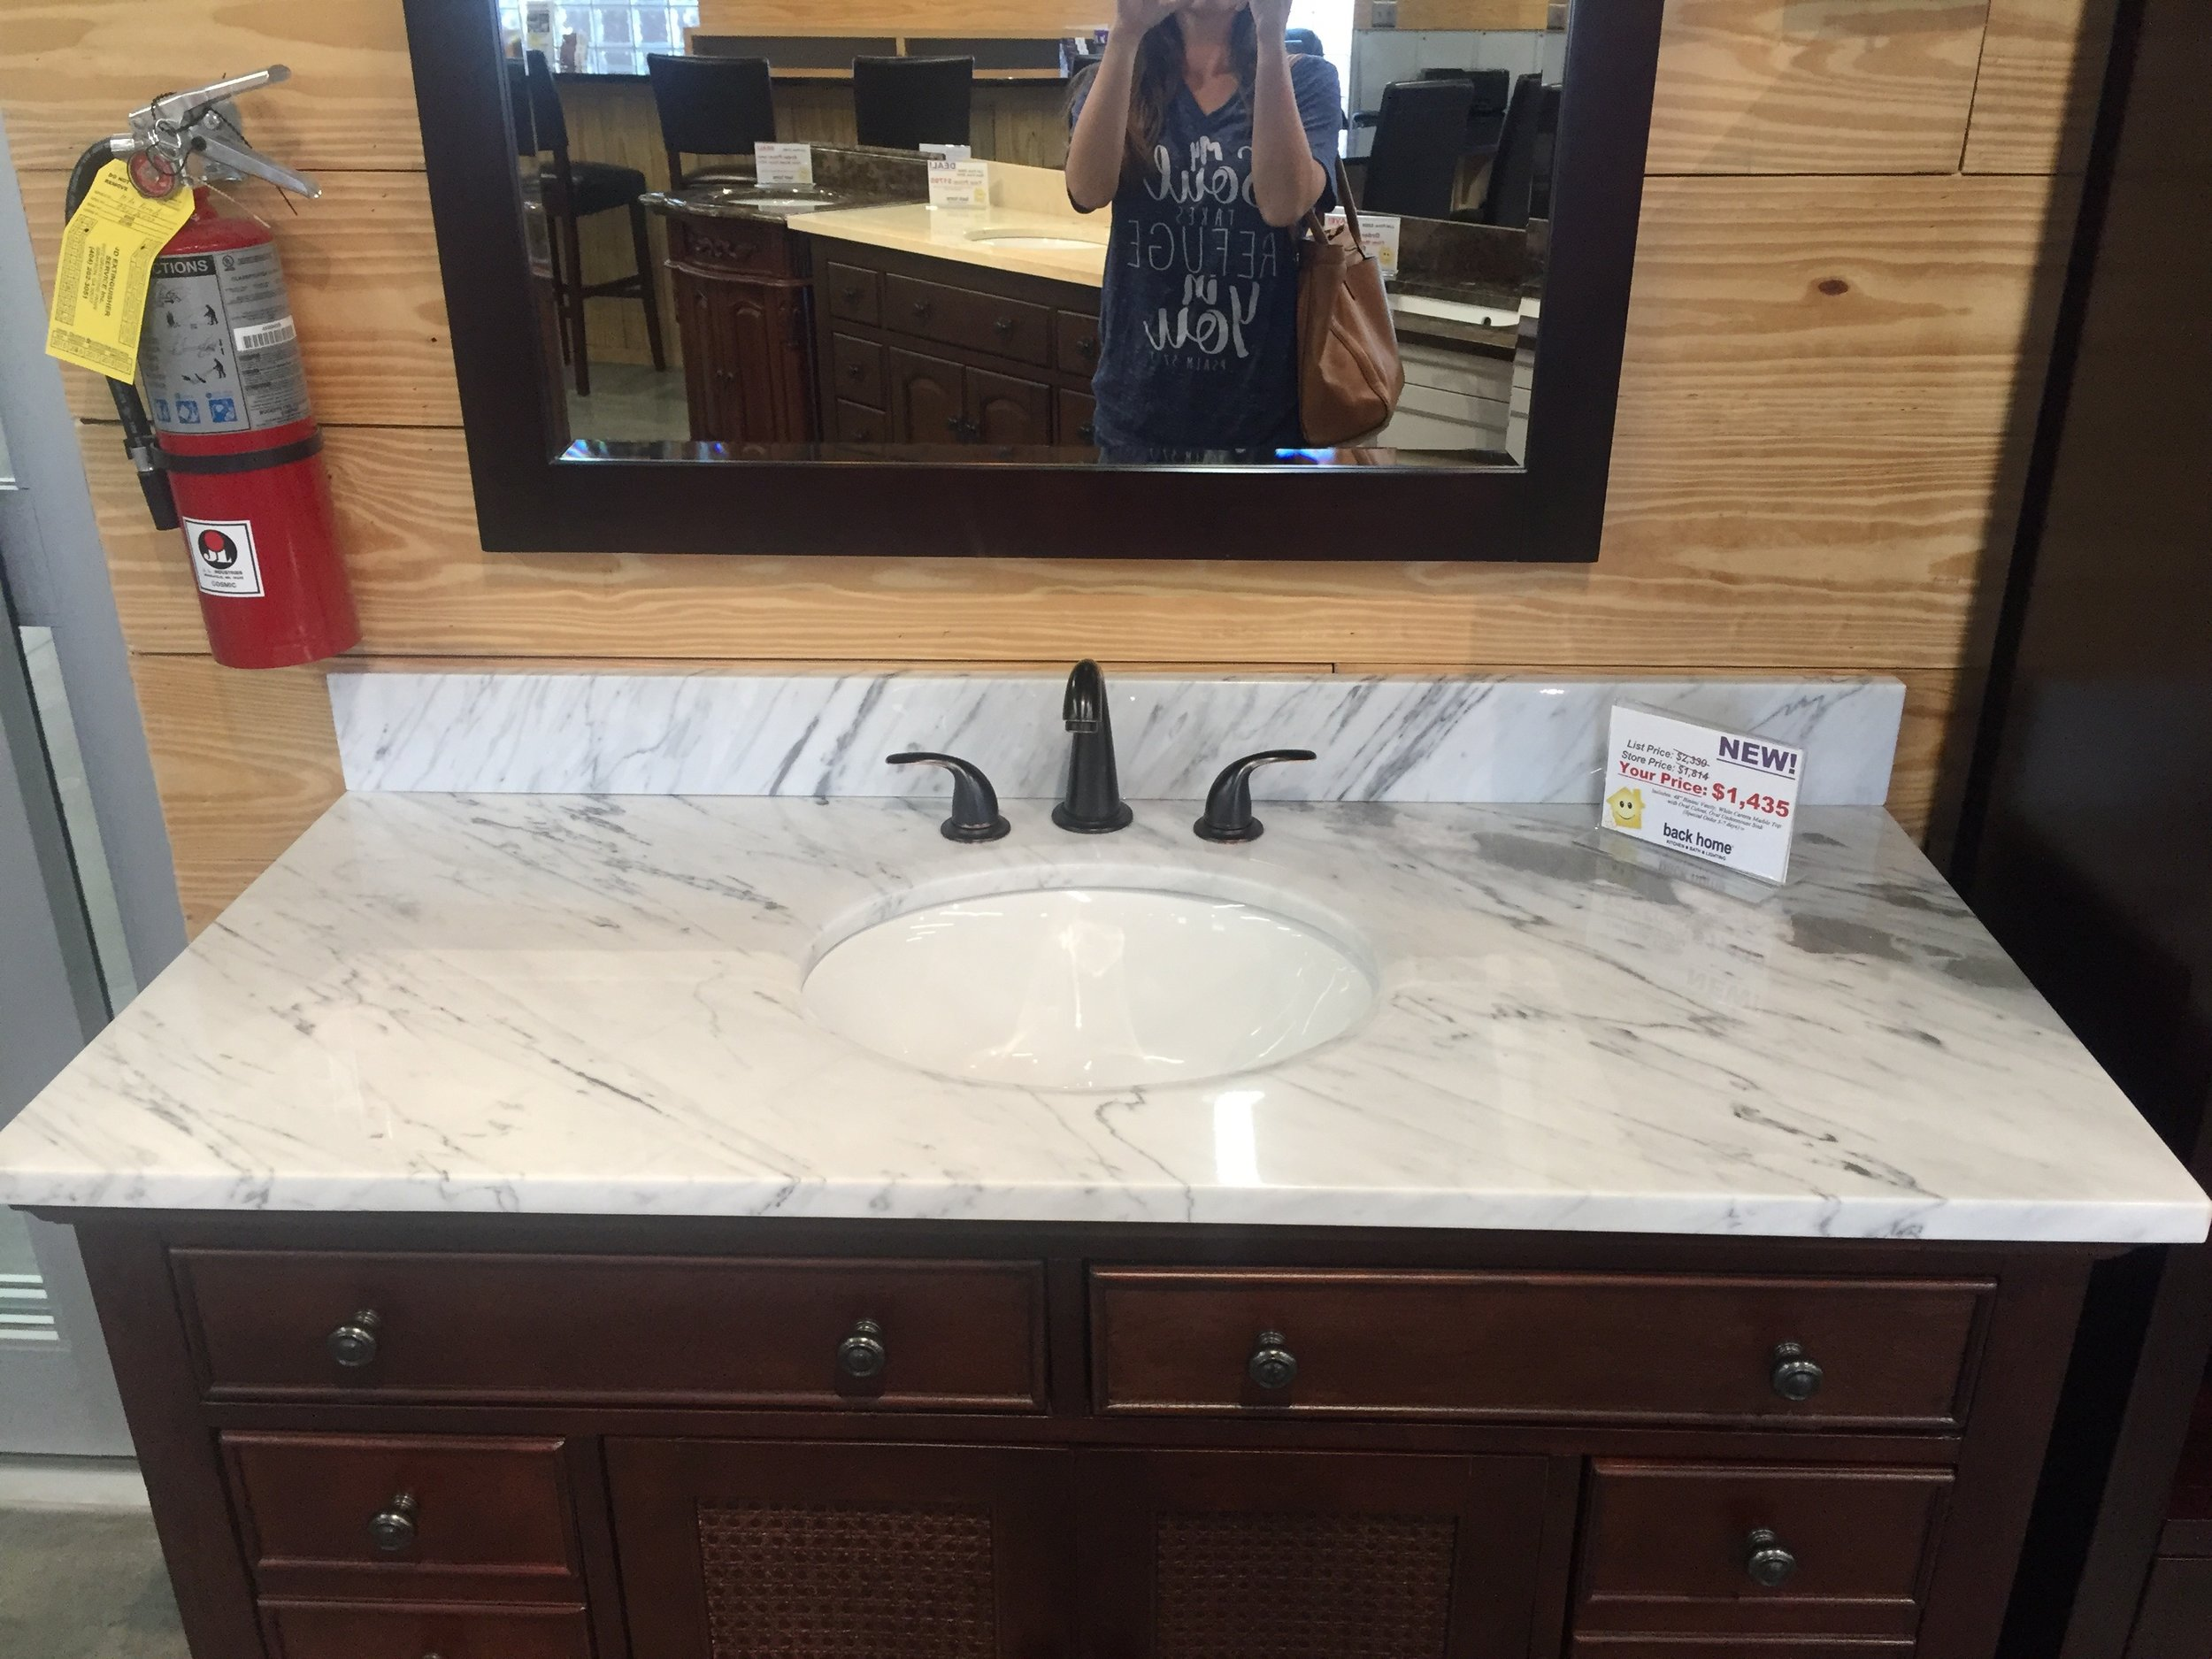 We got incredibly lucky and found the perfect counter top and sink exactly the size we needed. Plus it was discounted for being a display which just totally sealed the deal.